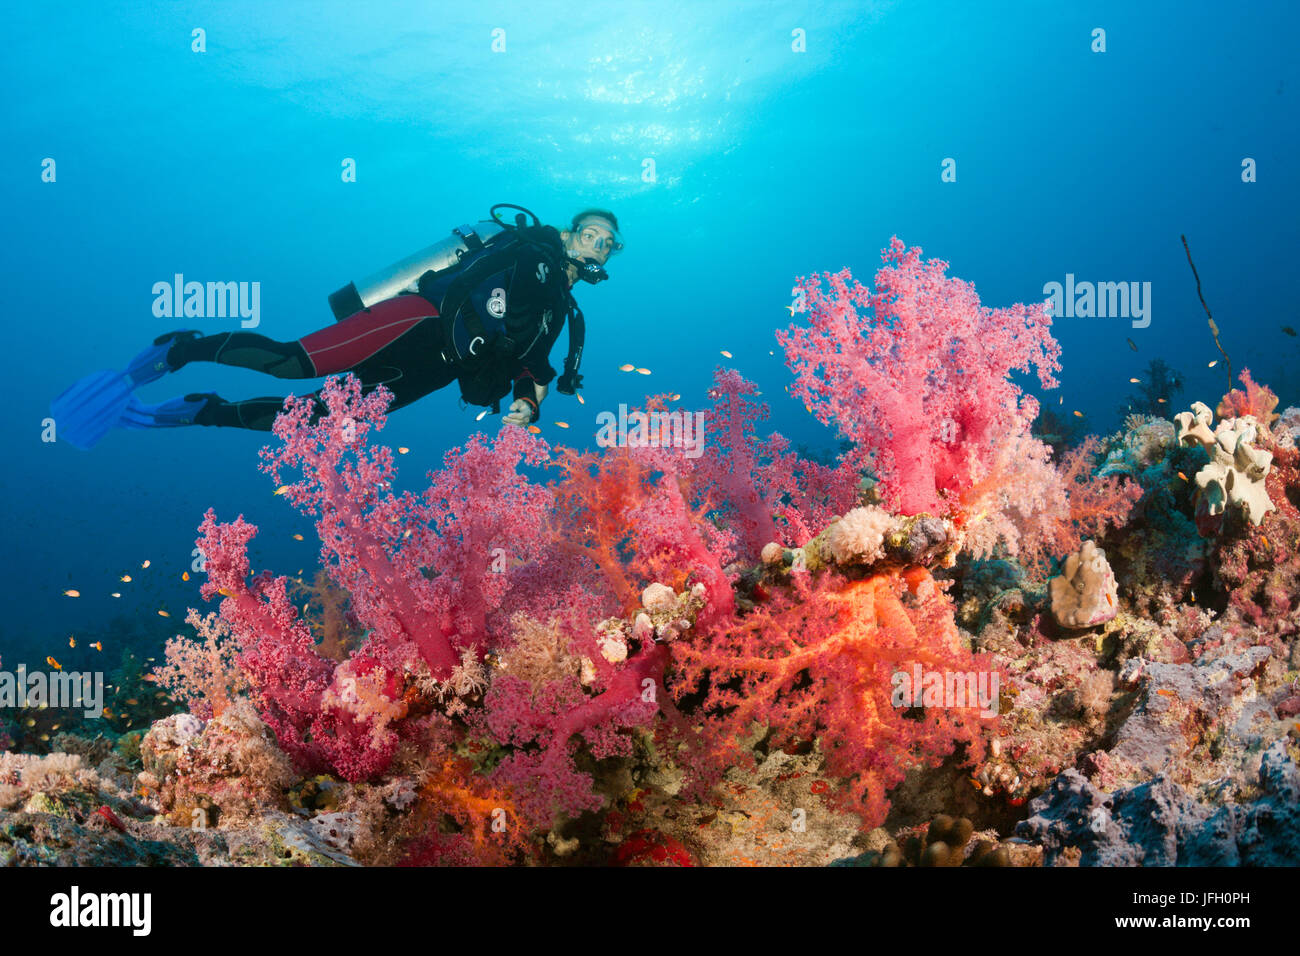 Diver over coral reef, the Red Sea, Ras Mohammed, Egypt - Stock Image